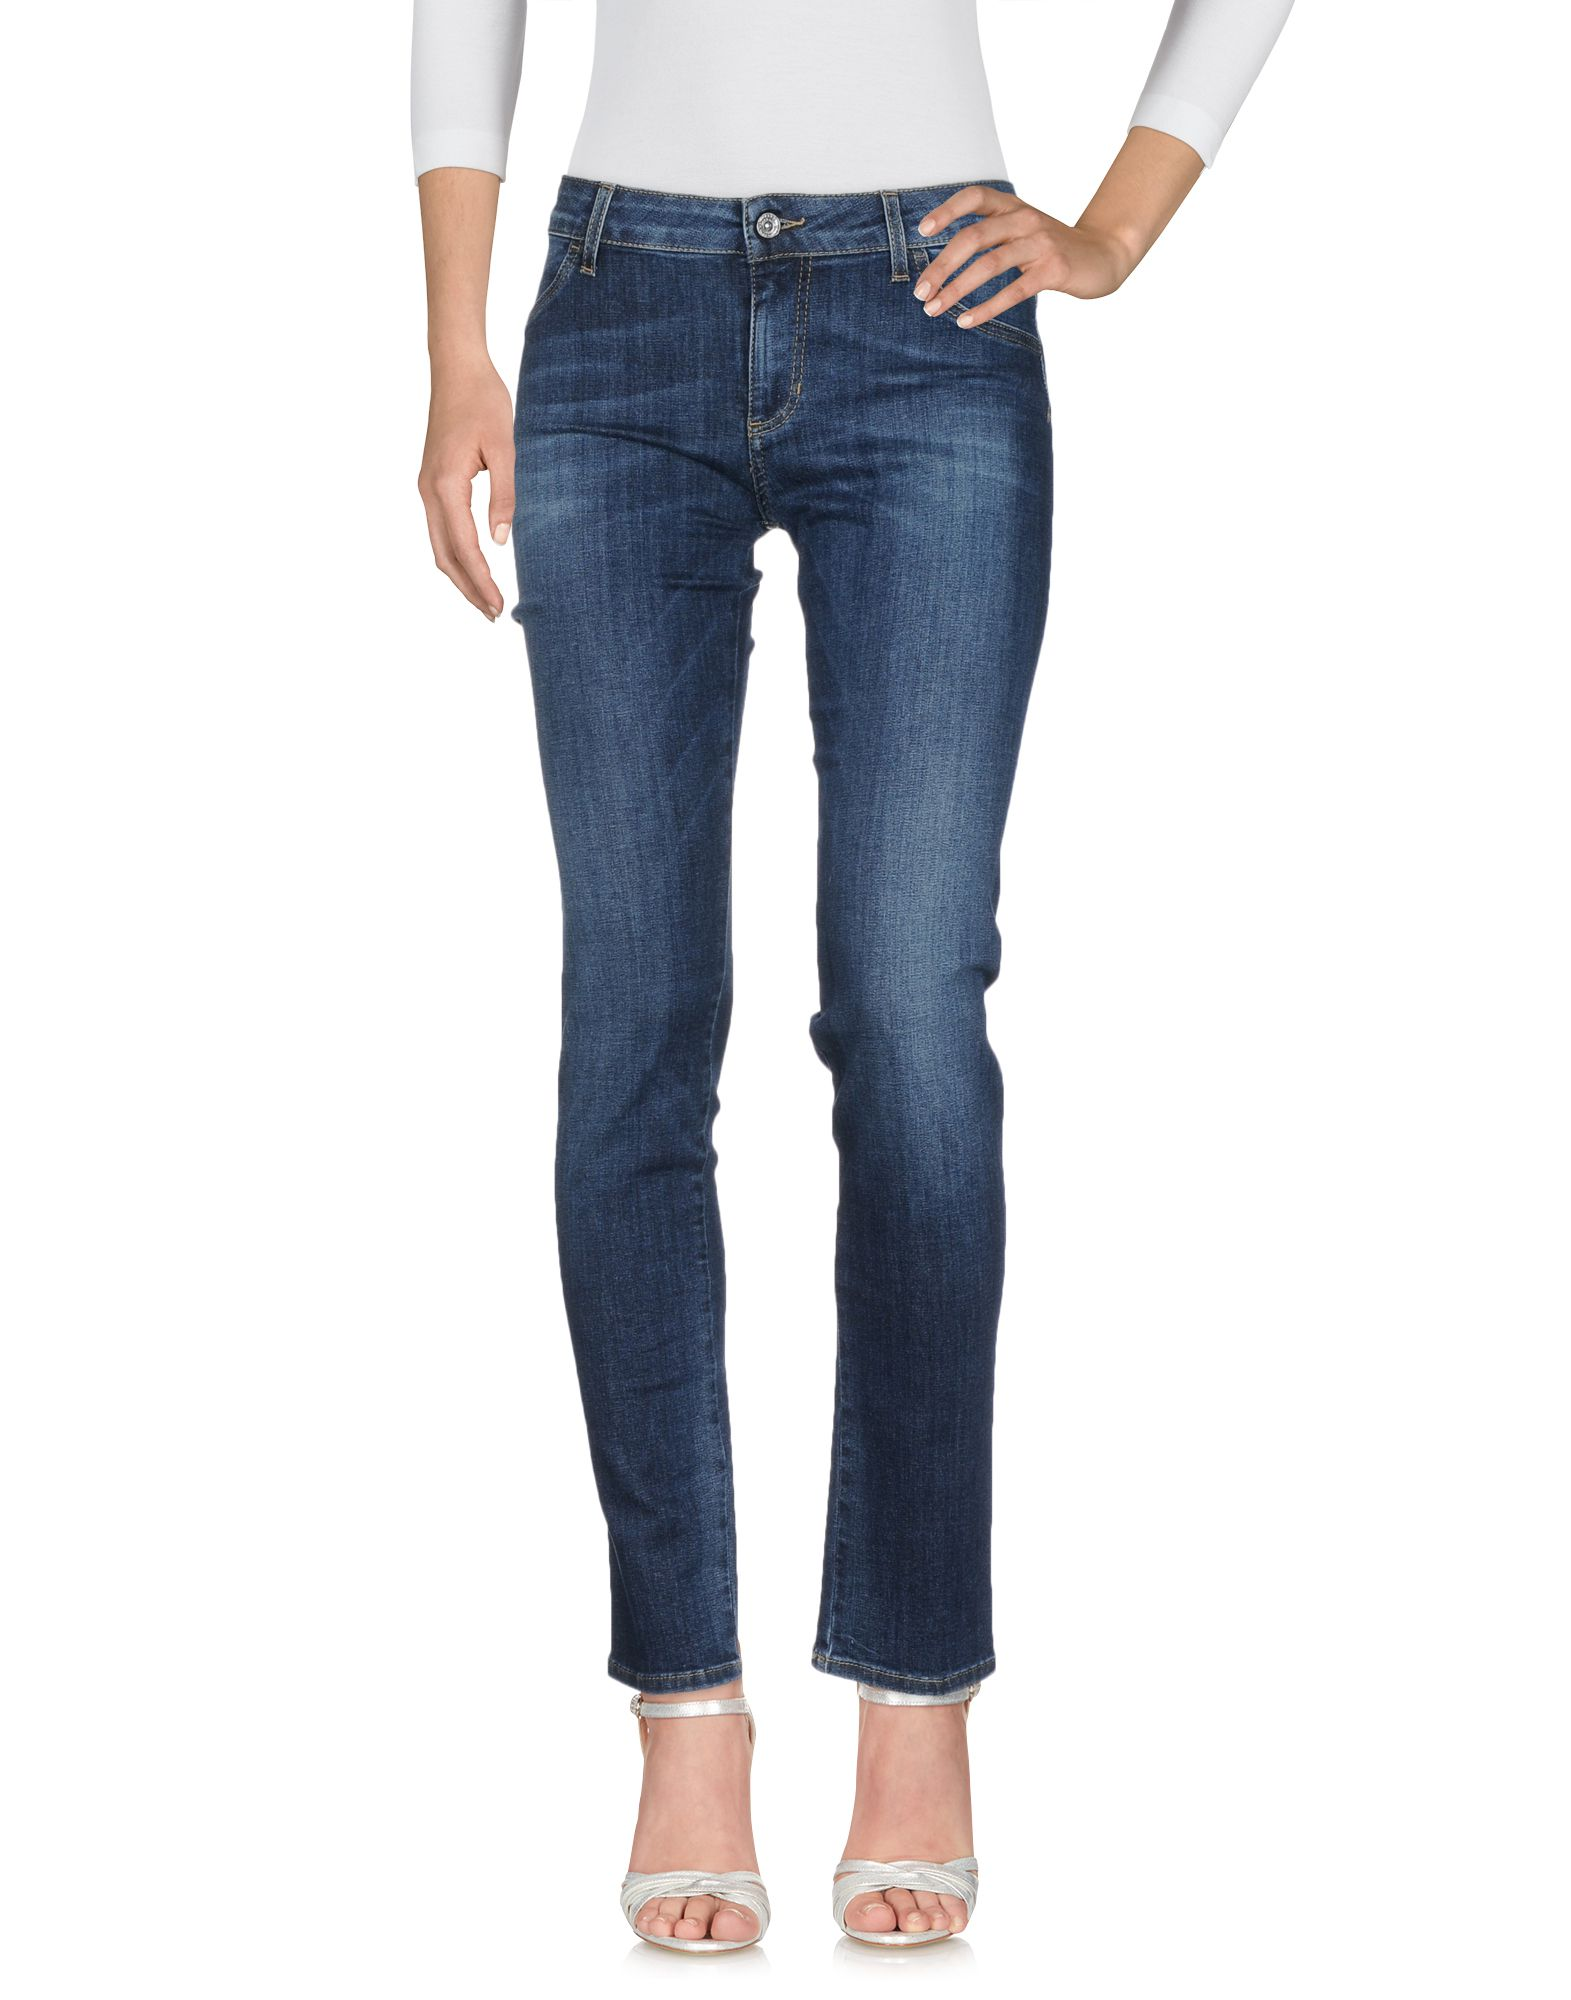 Pantaloni Jeans Rebel Queen Donna - Acquista online su 8qwh6r